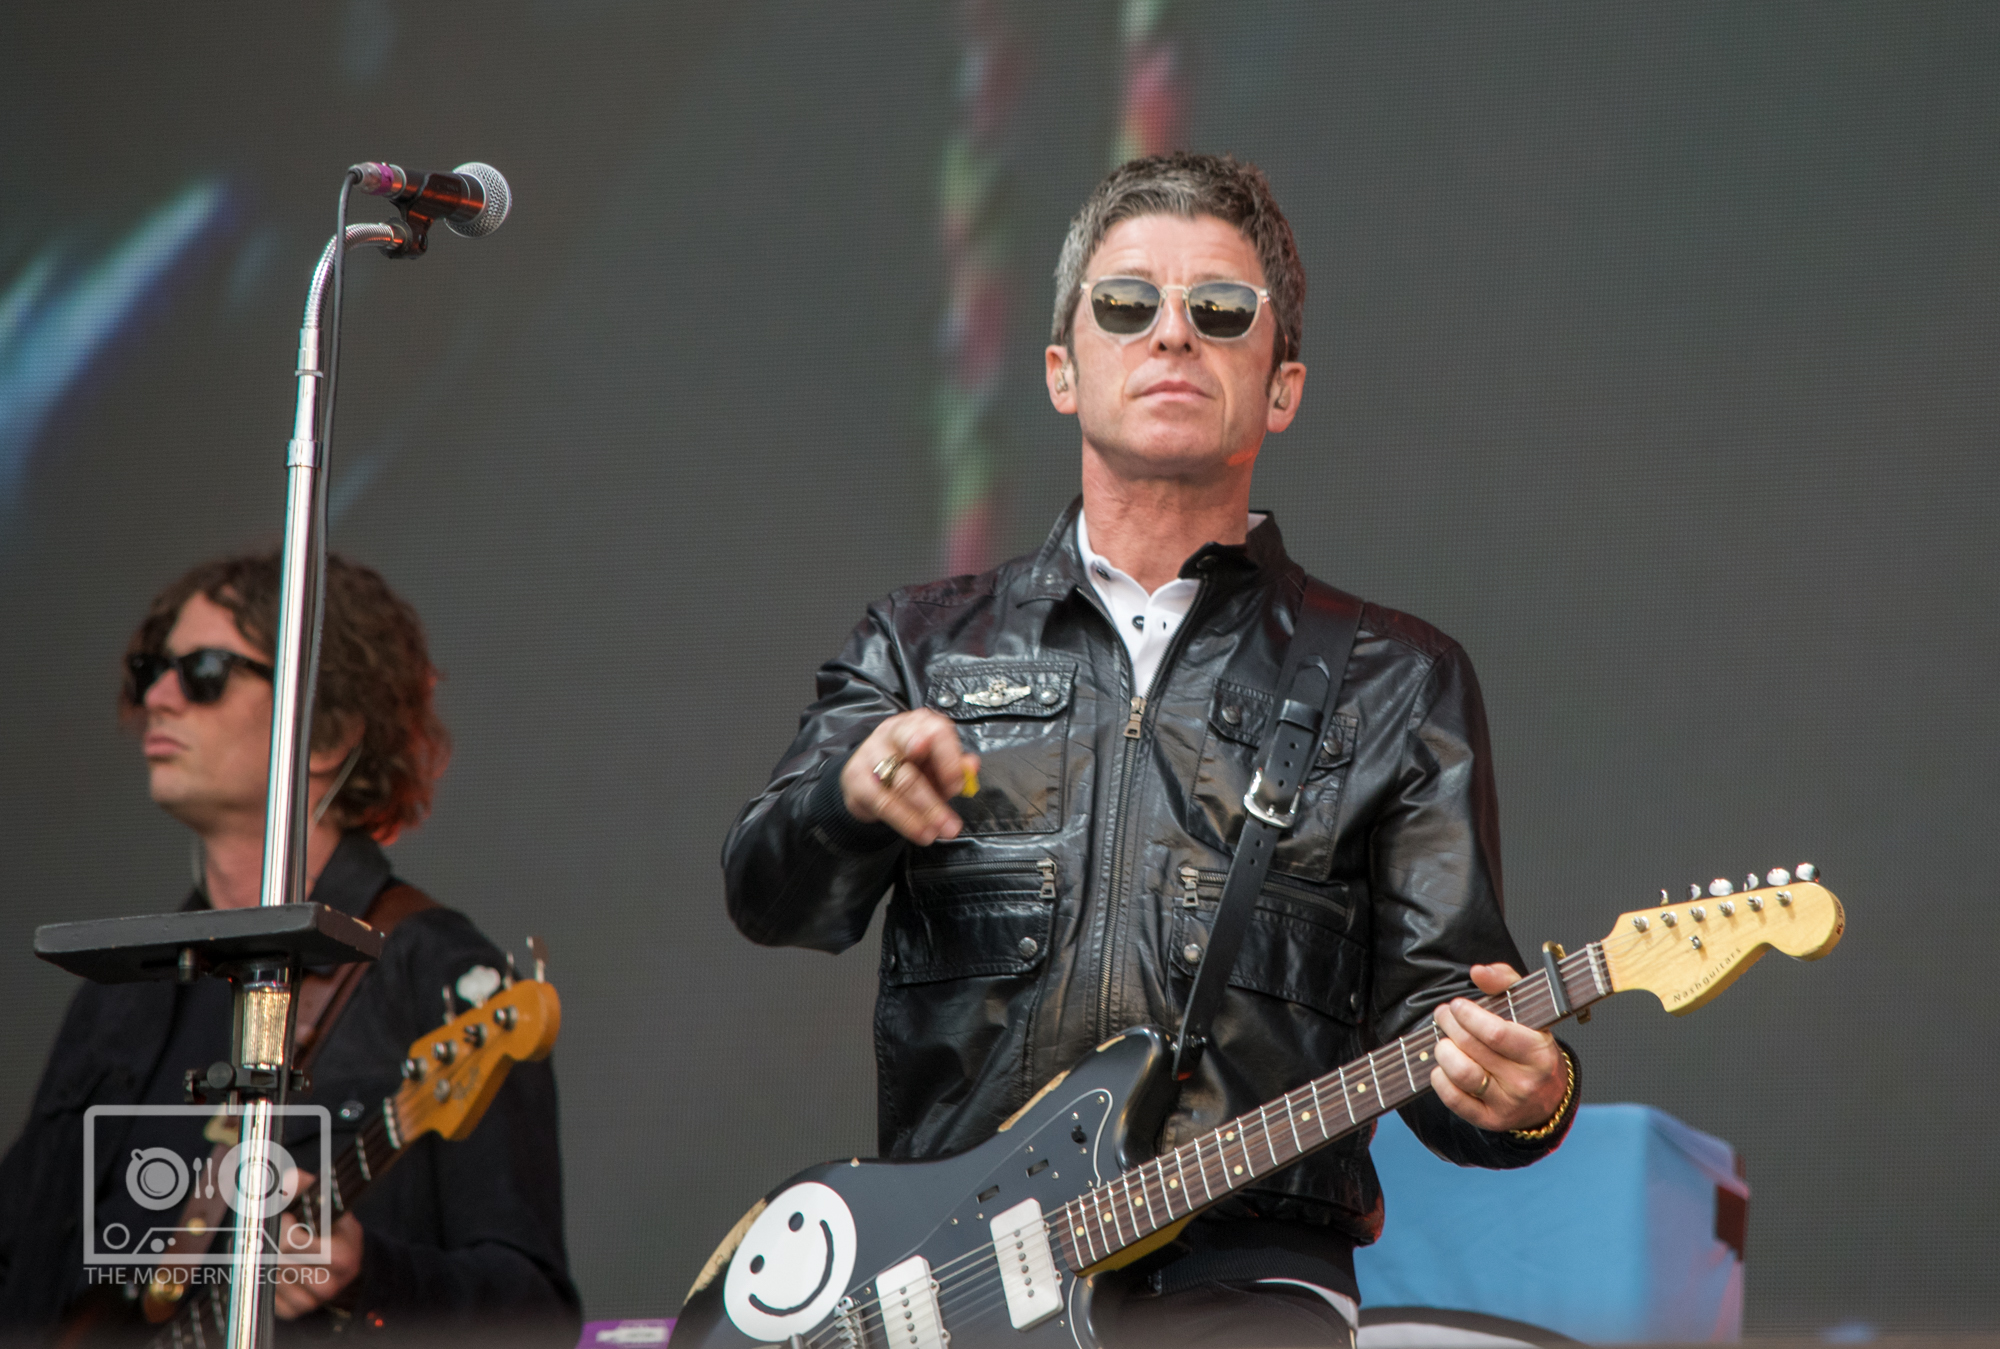 NOEL GALLAGHER CLOSING FINAL DAY AT BBC BIGGEST WEEKEND IN PERTH - 26.05.2018  PICTURE BY: STEPHEN WILSON PHOTOGRAPHY